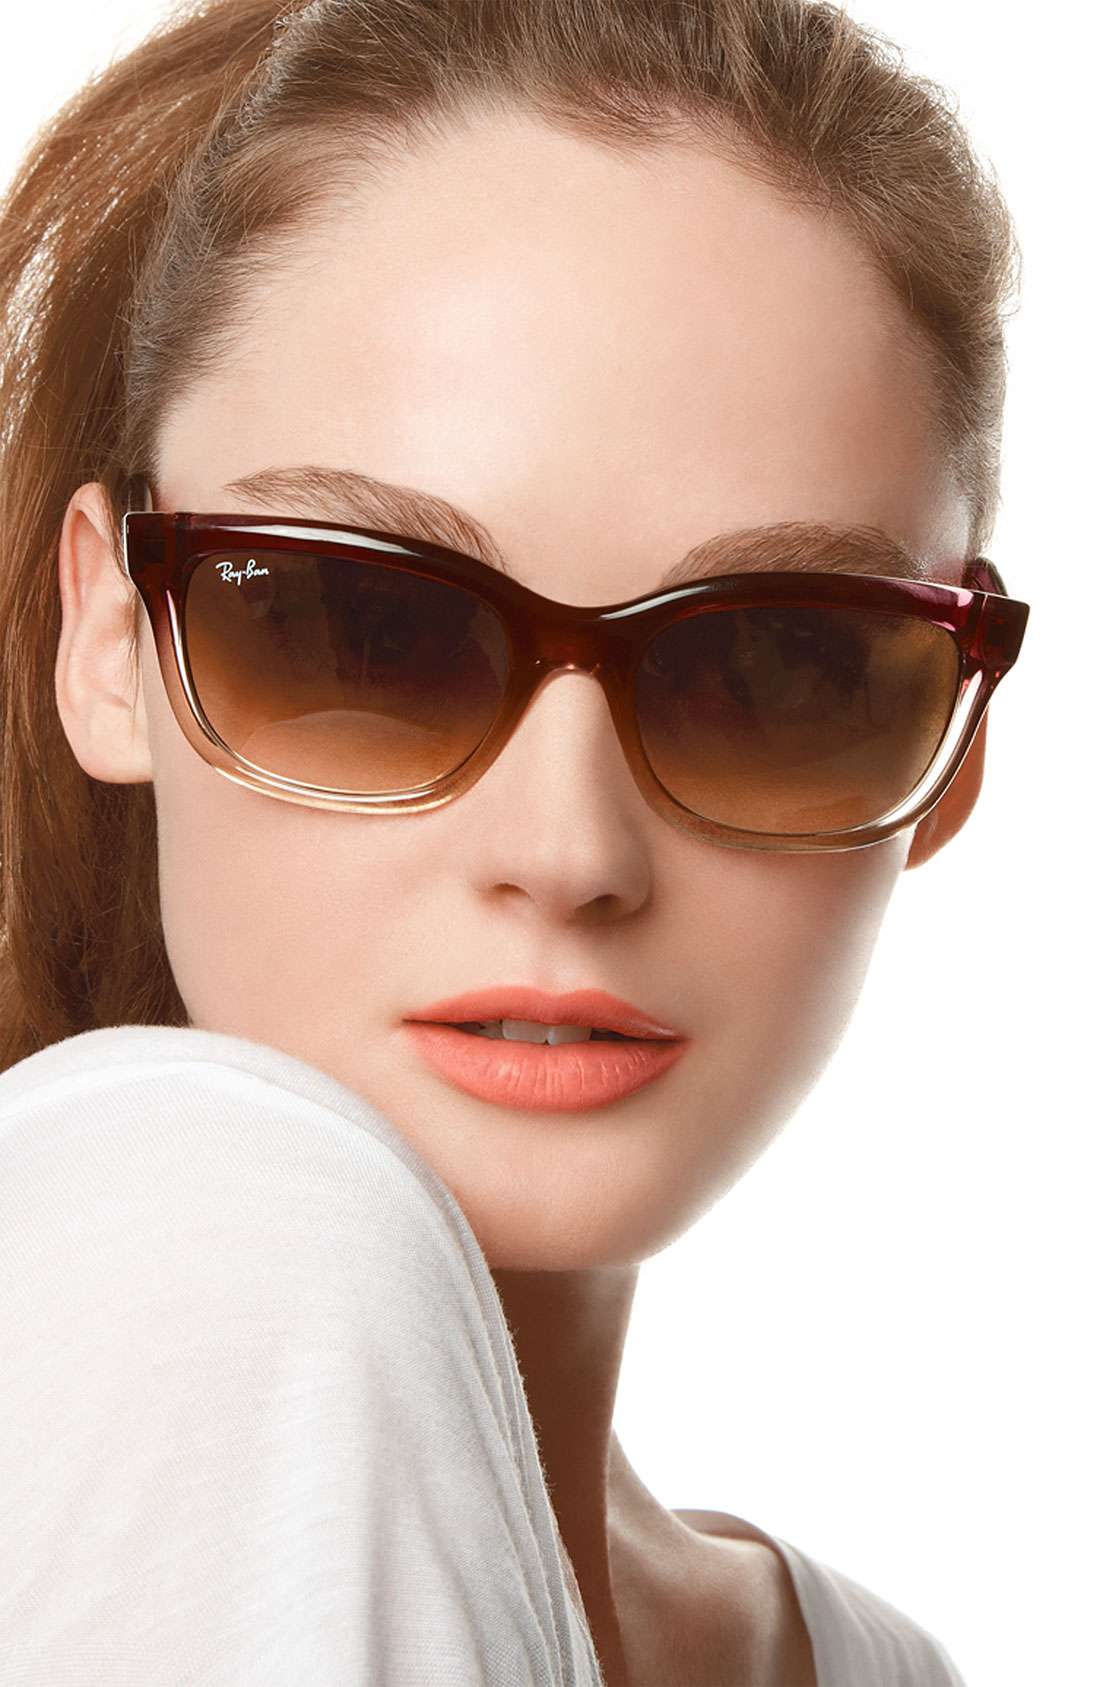 Ray-Ban-Sunglasses-Specials-Summer-2015-Women